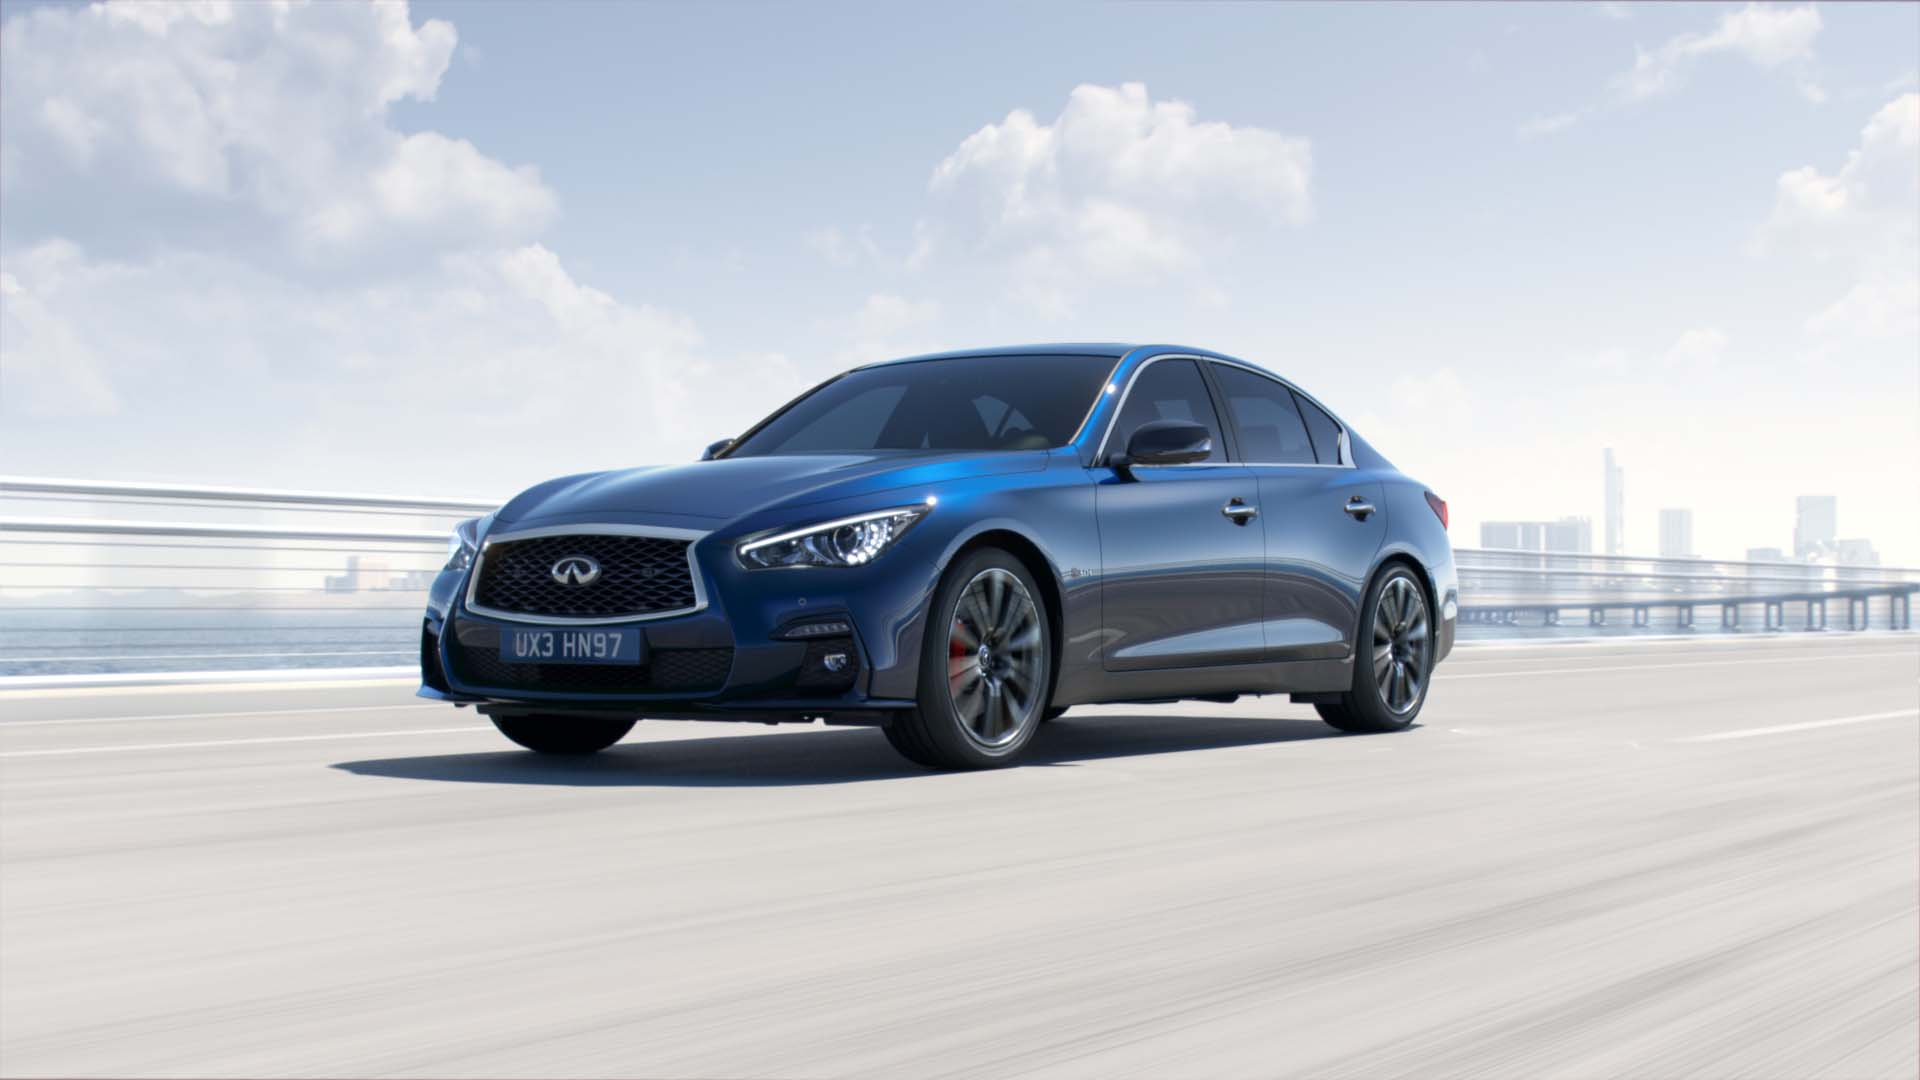 2019 INFINITI Q50 Review, Ratings, Specs, Prices, and ...